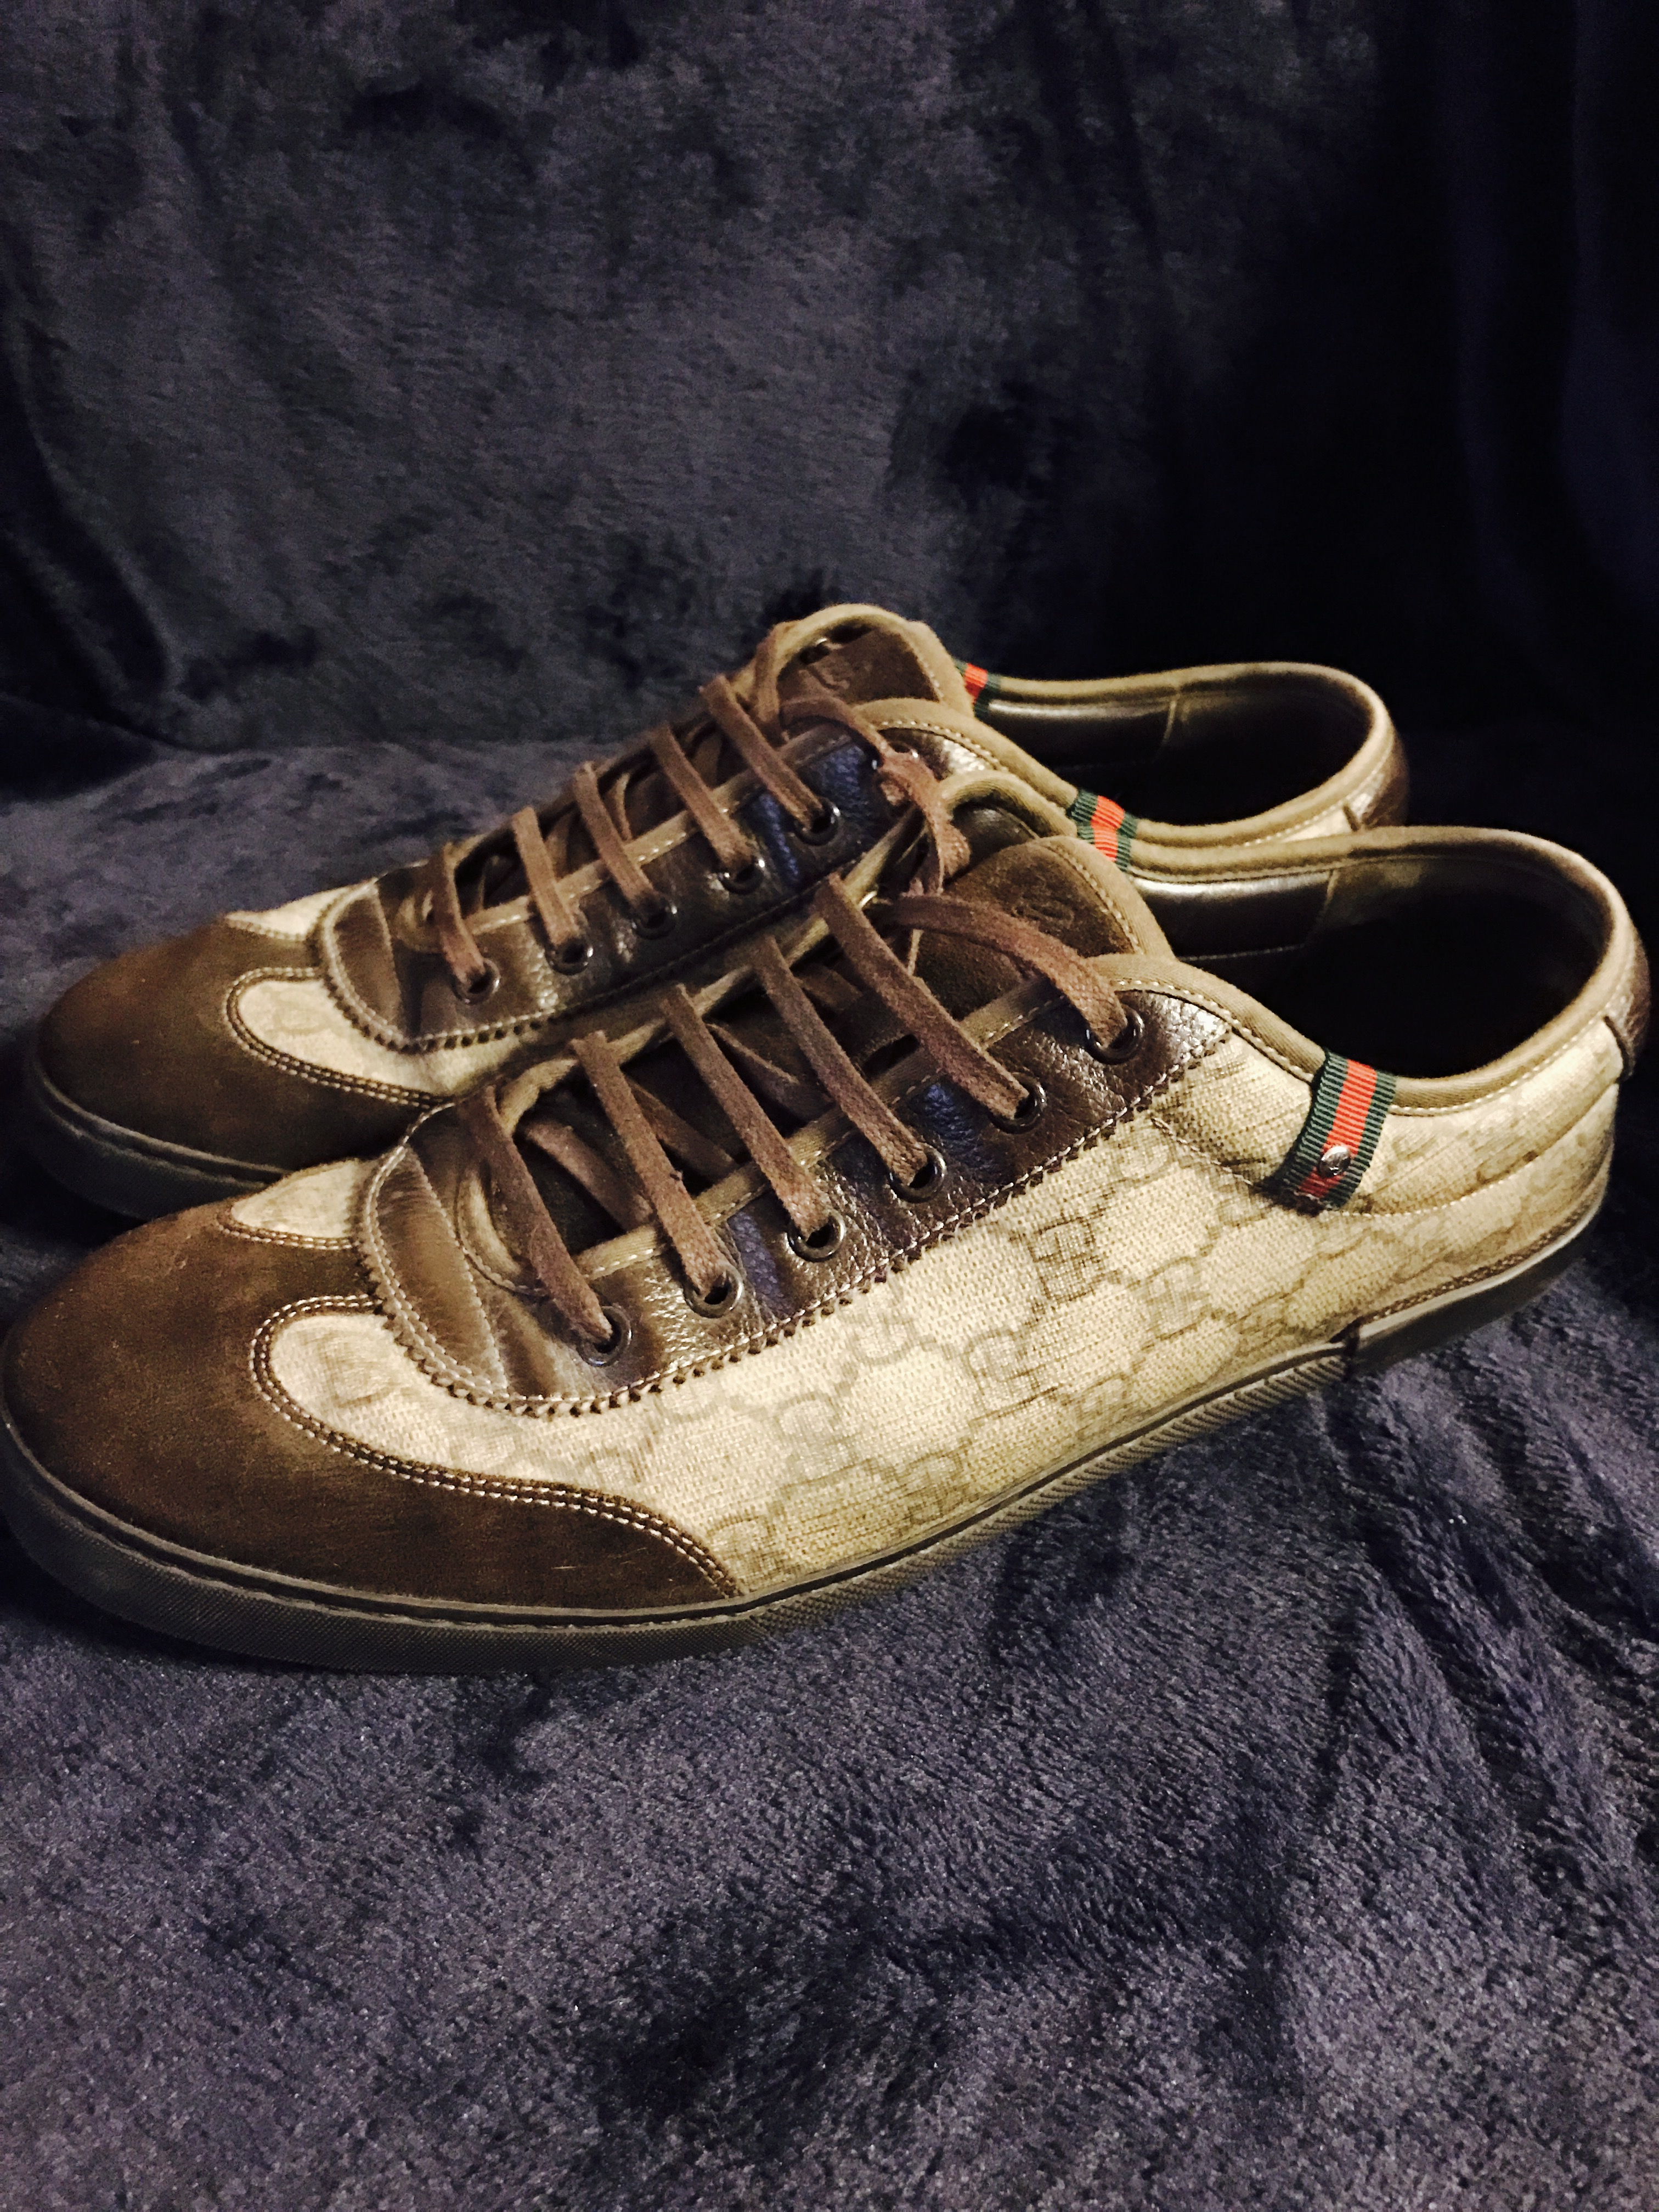 c70b4a0b3 Gucci Used Gucci Mens Gg Plus Barcelona Sneakers Sz 11.5 Brown ...